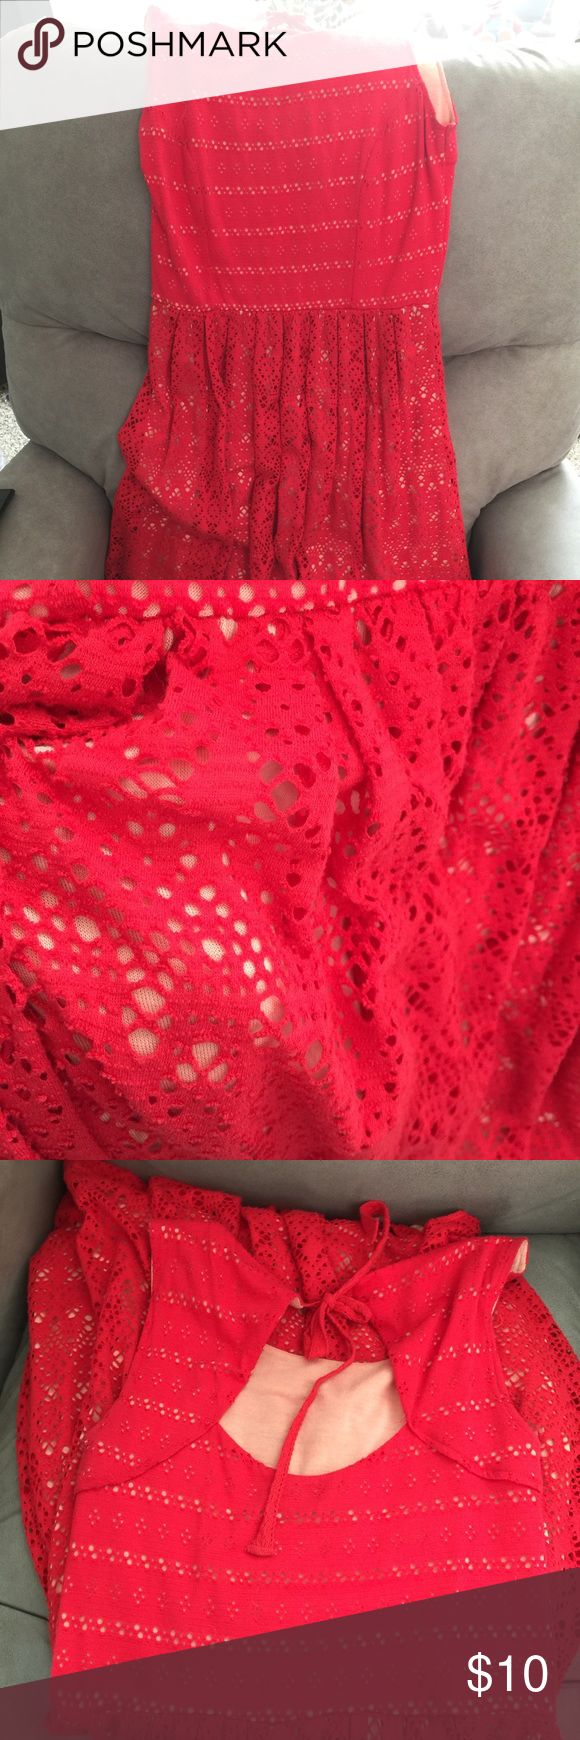 Coral lace Anthropologie Postmark fit flare dress Postmark Anthropologie lace dress in bright coral red. Very soft and stretchy! Comfy too! Overall great condition with just normal wear from washing. Size small. Tank bodice, cute tie bow on back. Lined. Postmark Dresses Mini